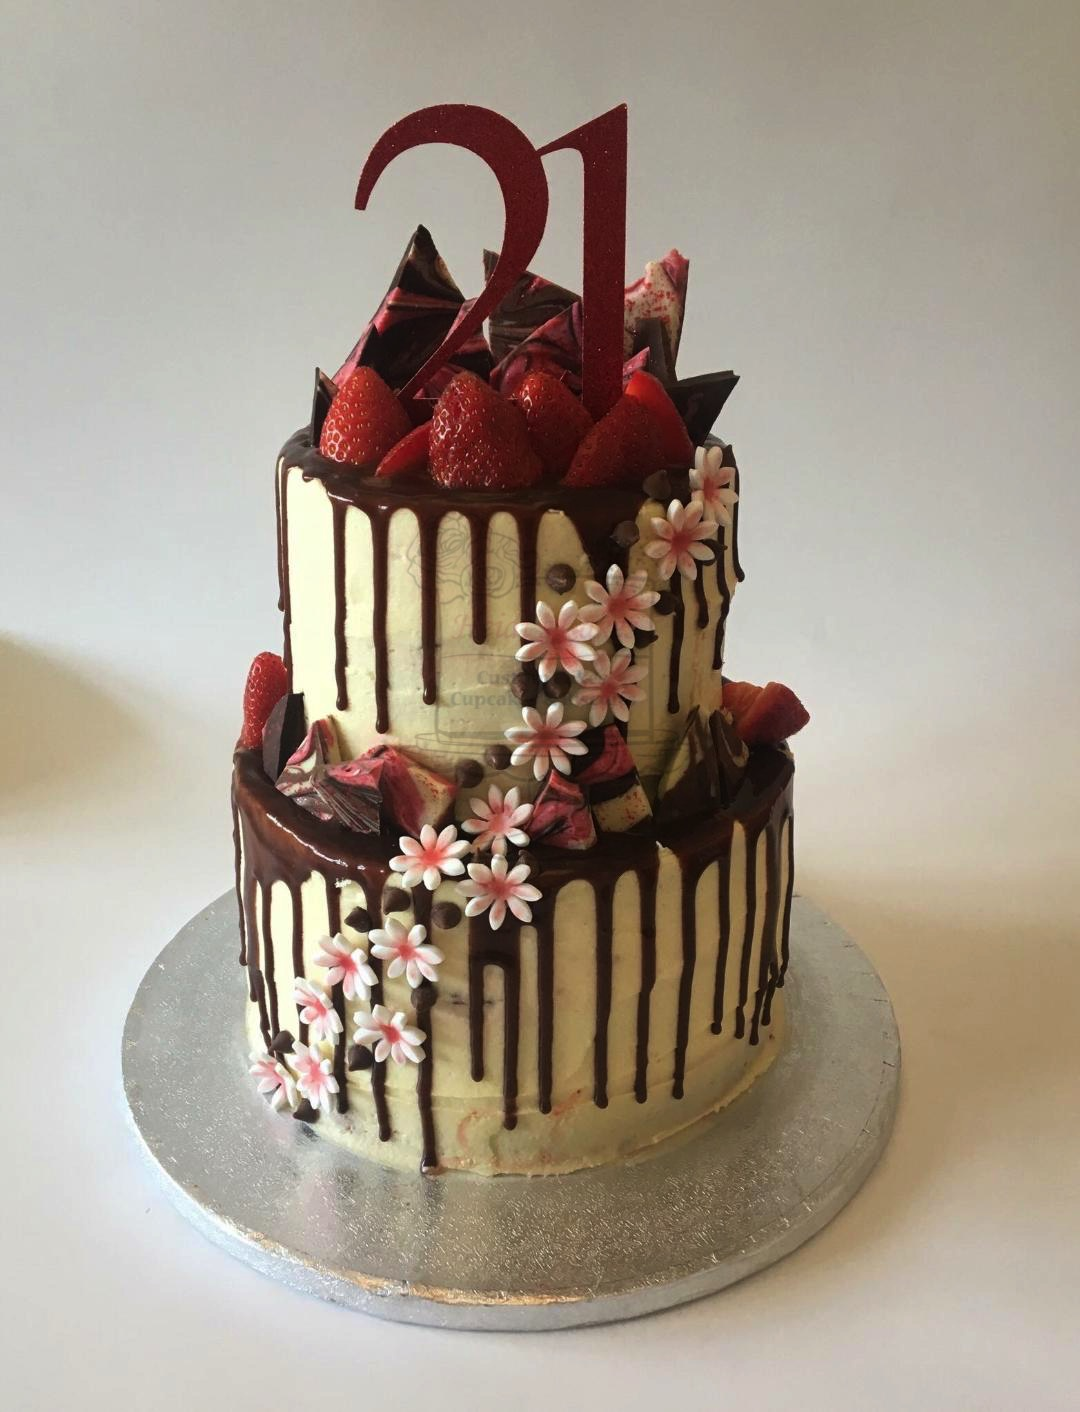 Sugar Flowers & Choc 2 Tier